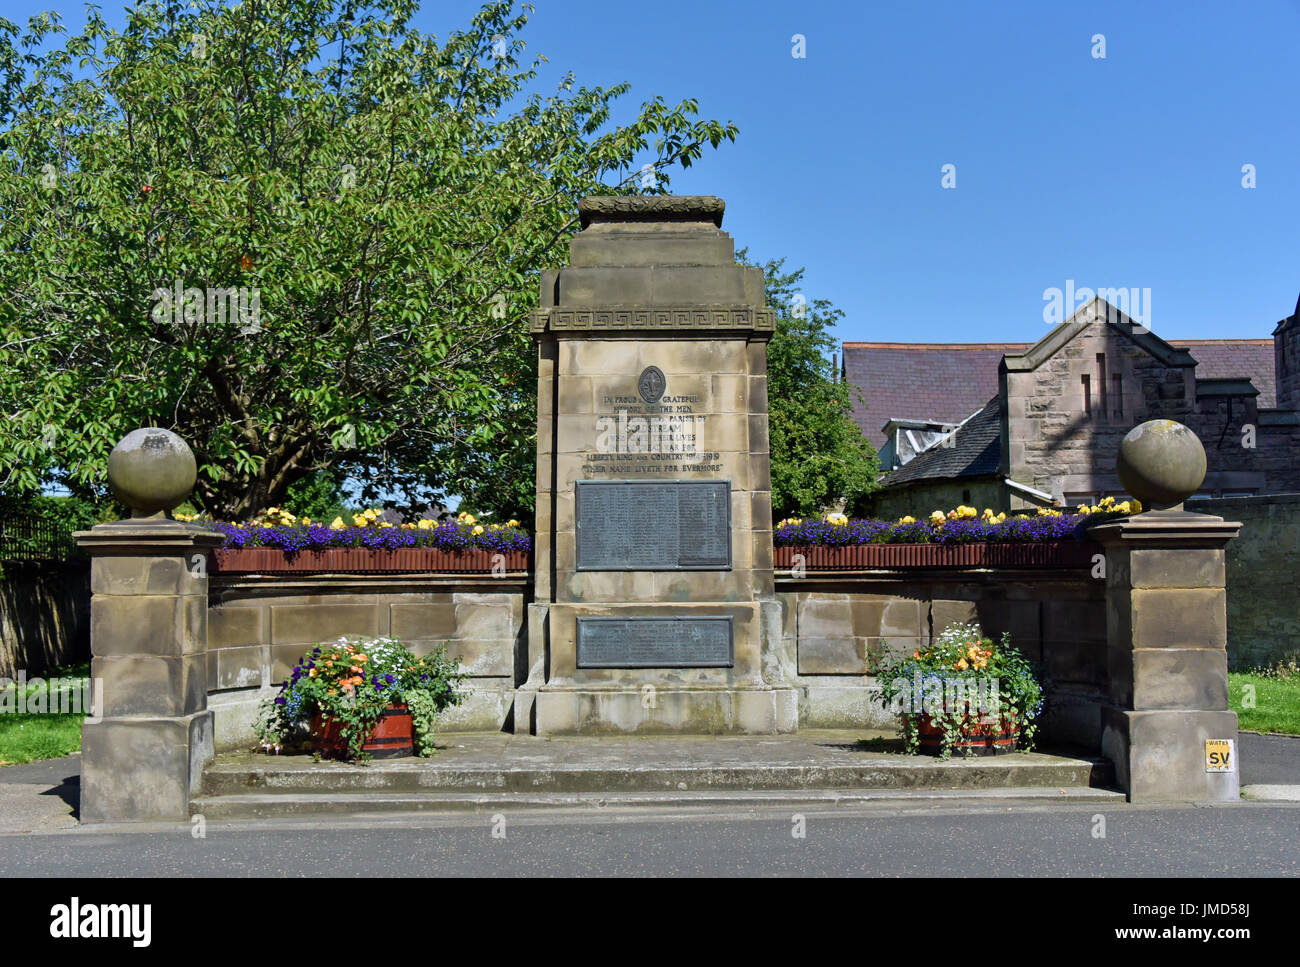 first-world-war-memorial-high-street-coldstream-scottish-borders-berwickshire-JMD58J.jpg